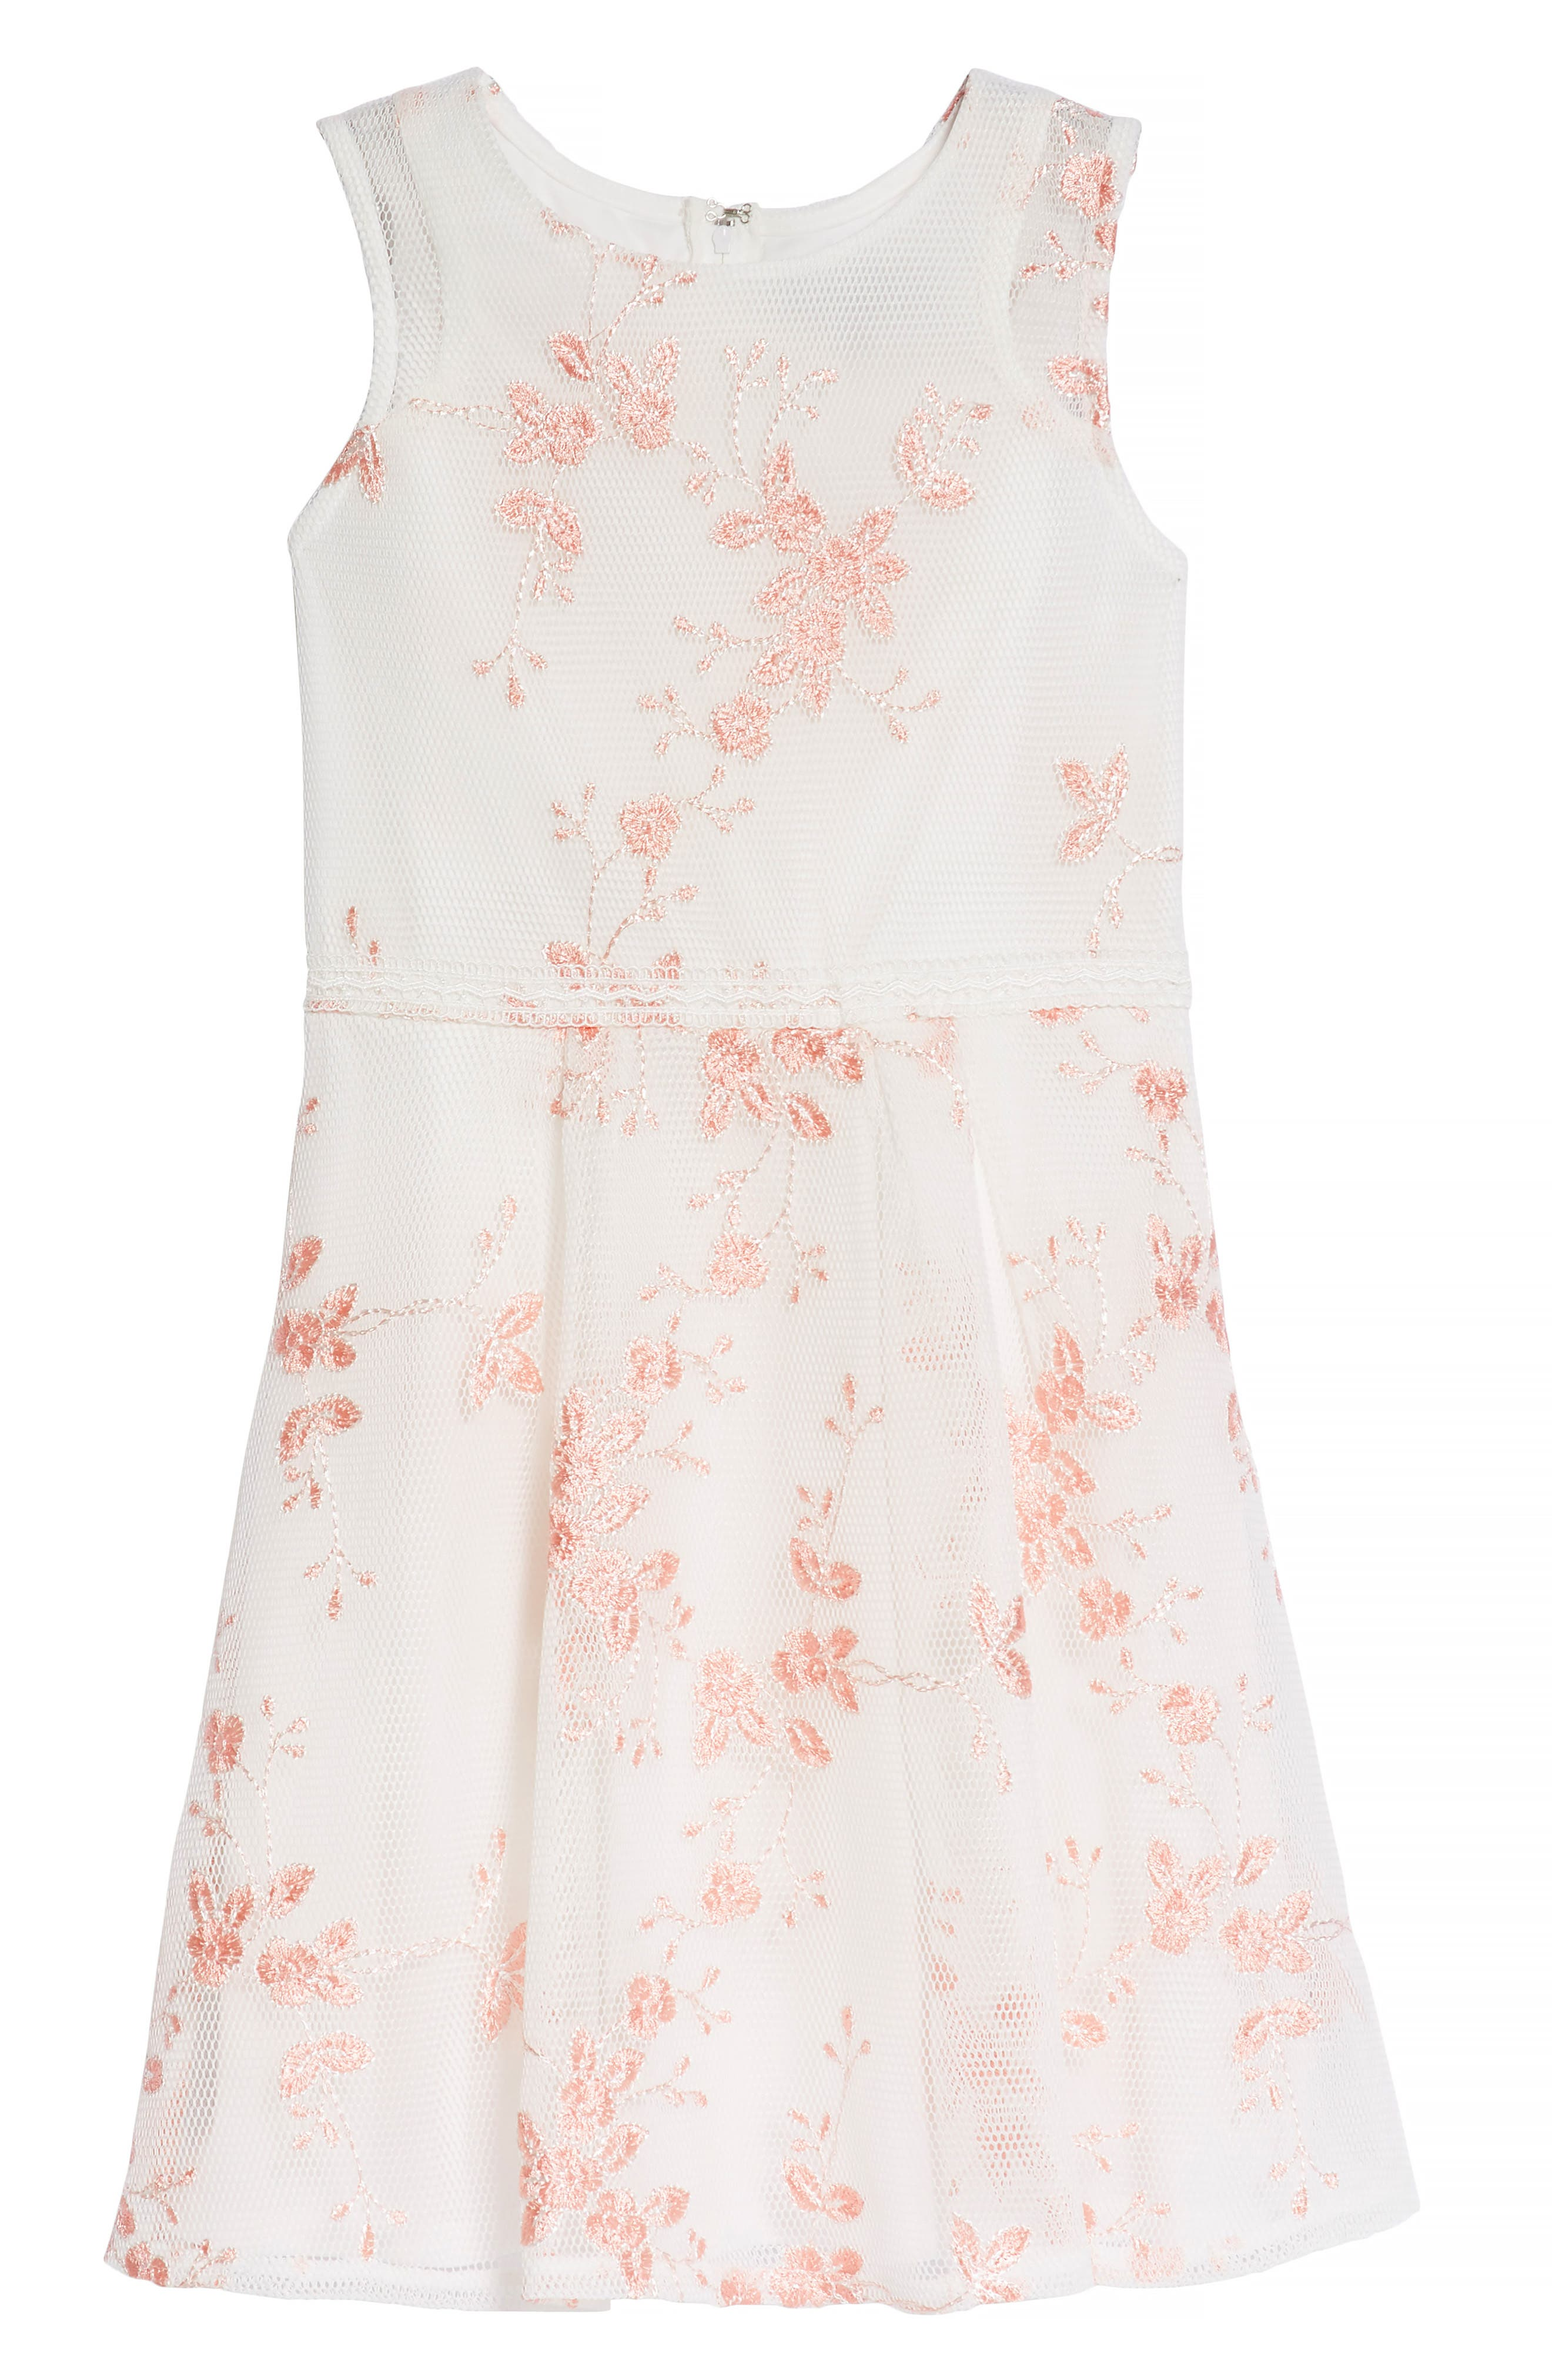 Embroidered Mesh Skater Dress,                         Main,                         color, White/ Coral